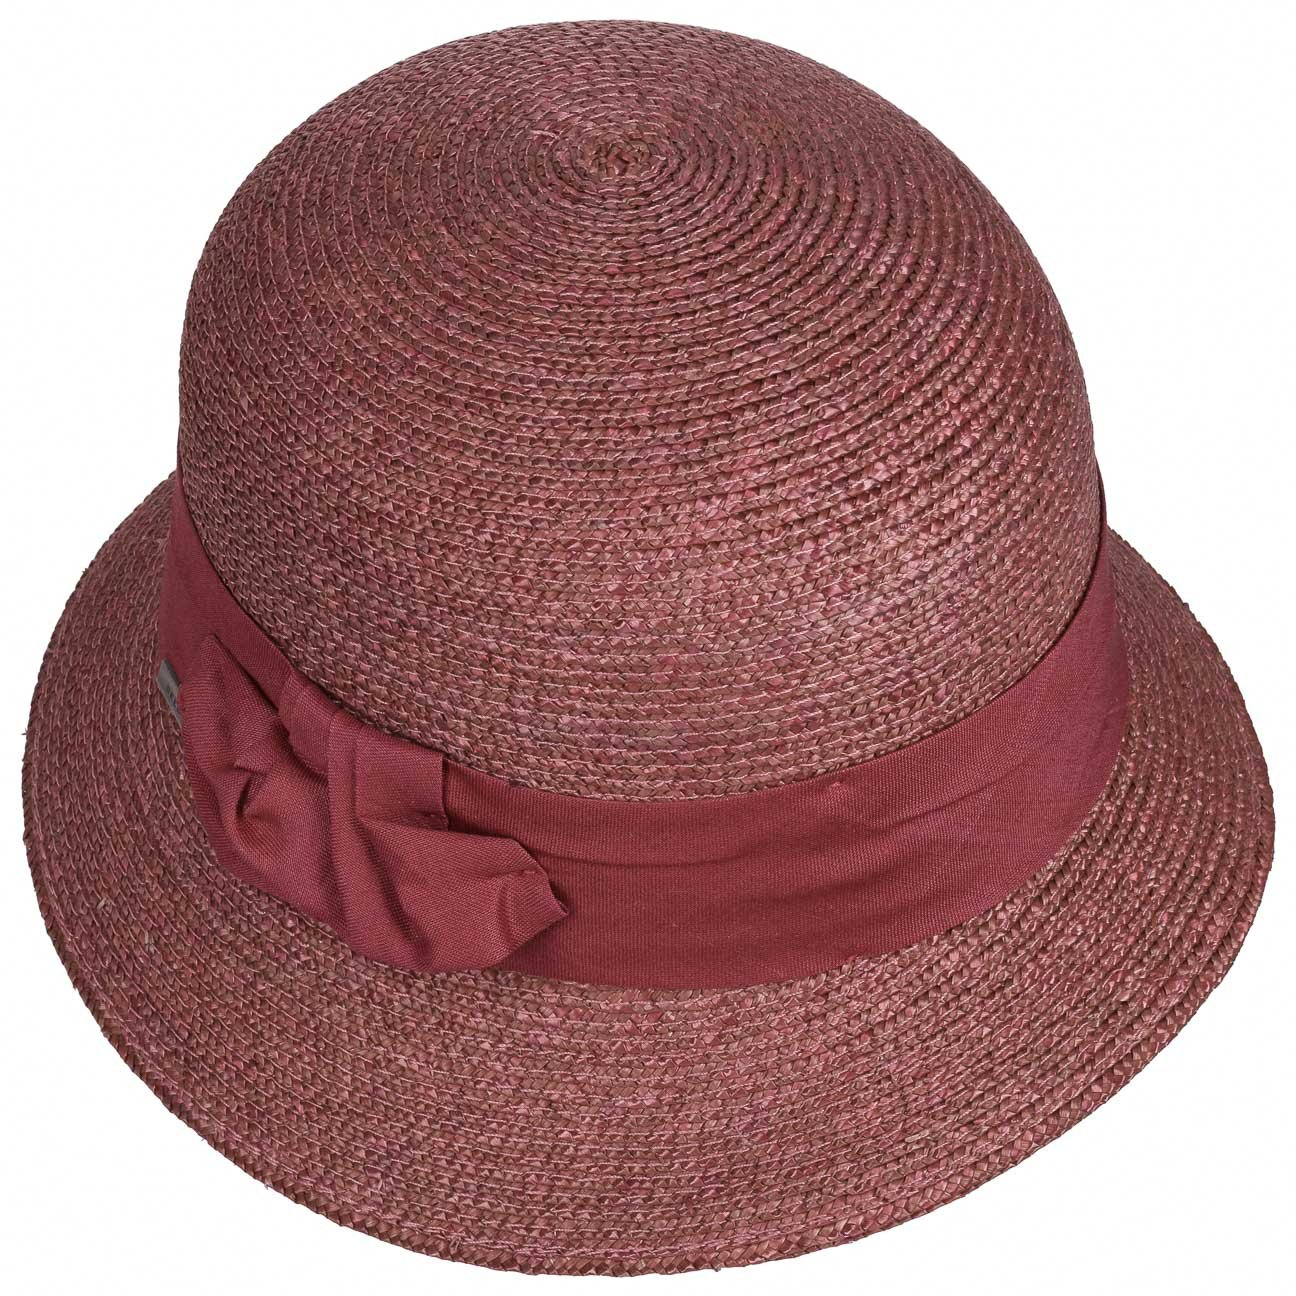 ea4c6332c2e Maria Braided Cloche Hat Seeberger straw hats cloche hat (One Size -  oldrose)  Amazon.co.uk  Clothing